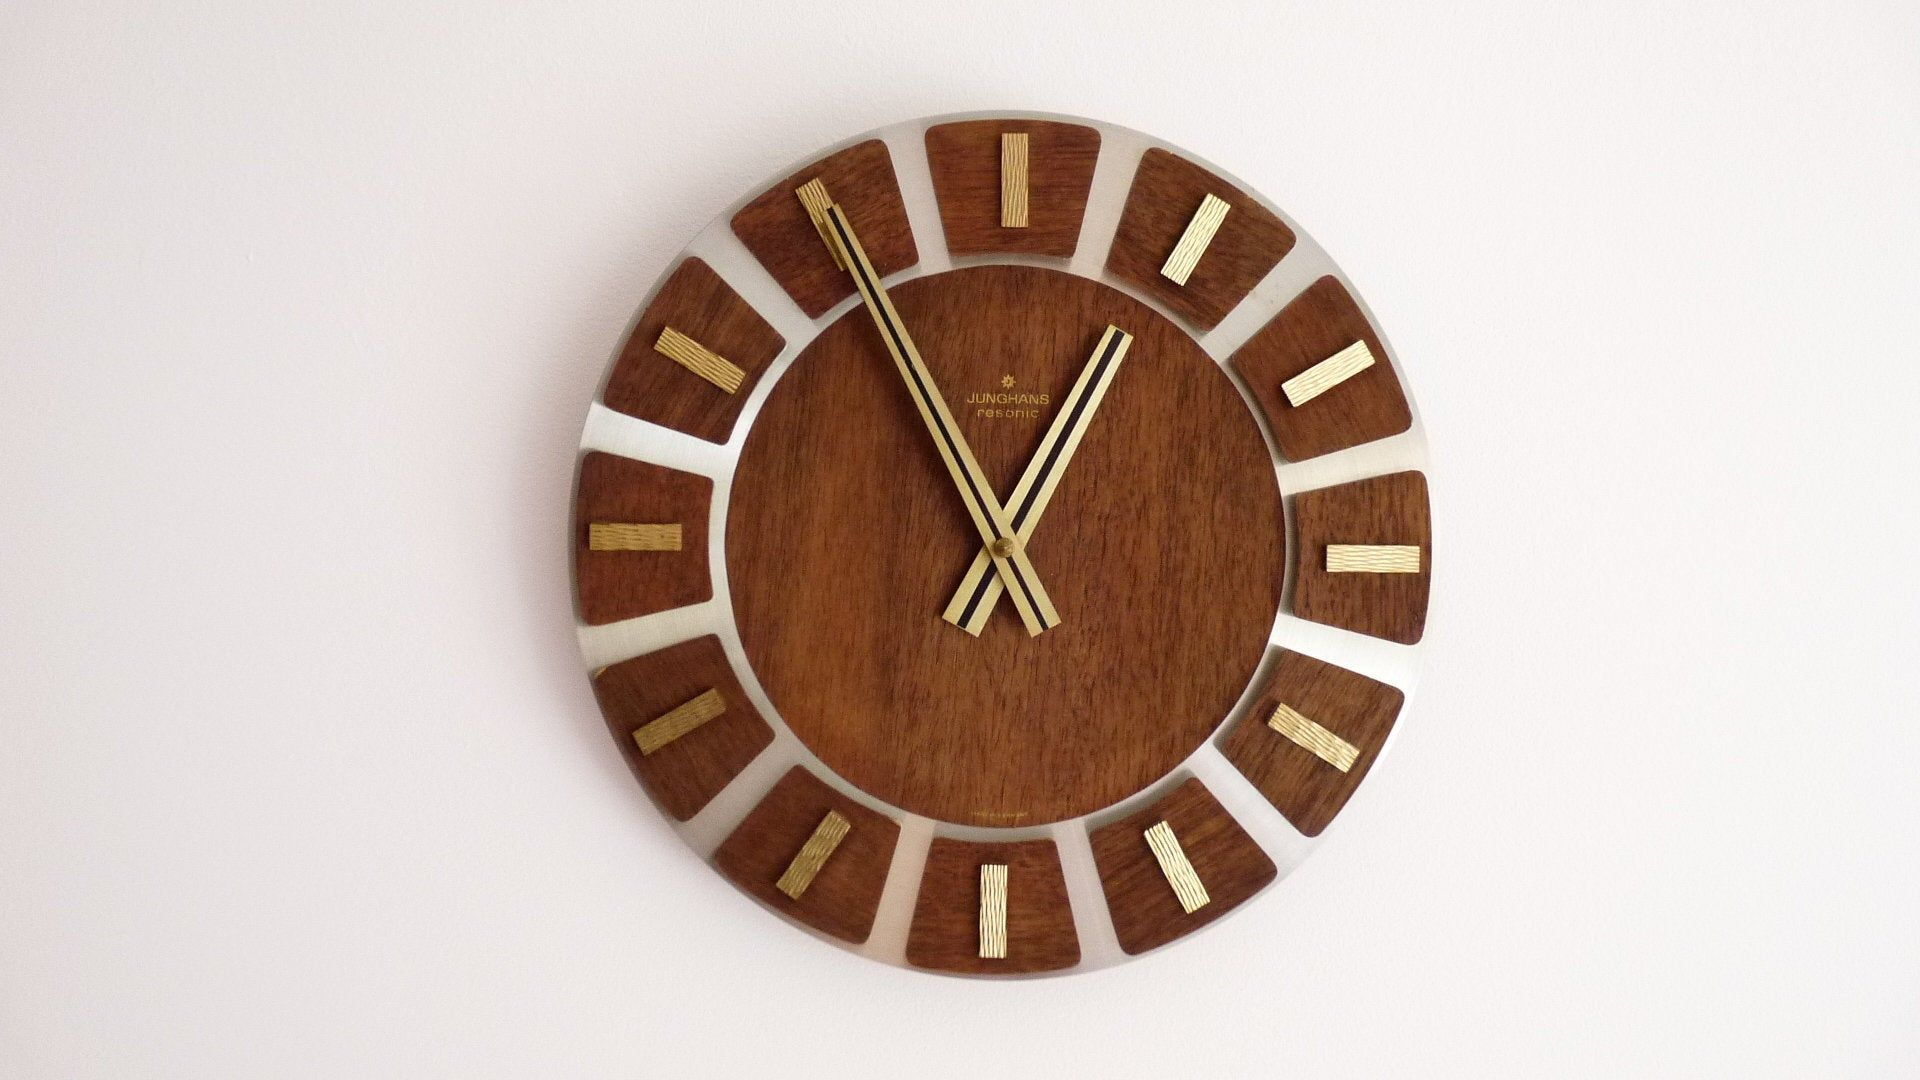 Wall Clock Junghans Resonic Teak Wood Brass Metal Mid Century 60s 70s